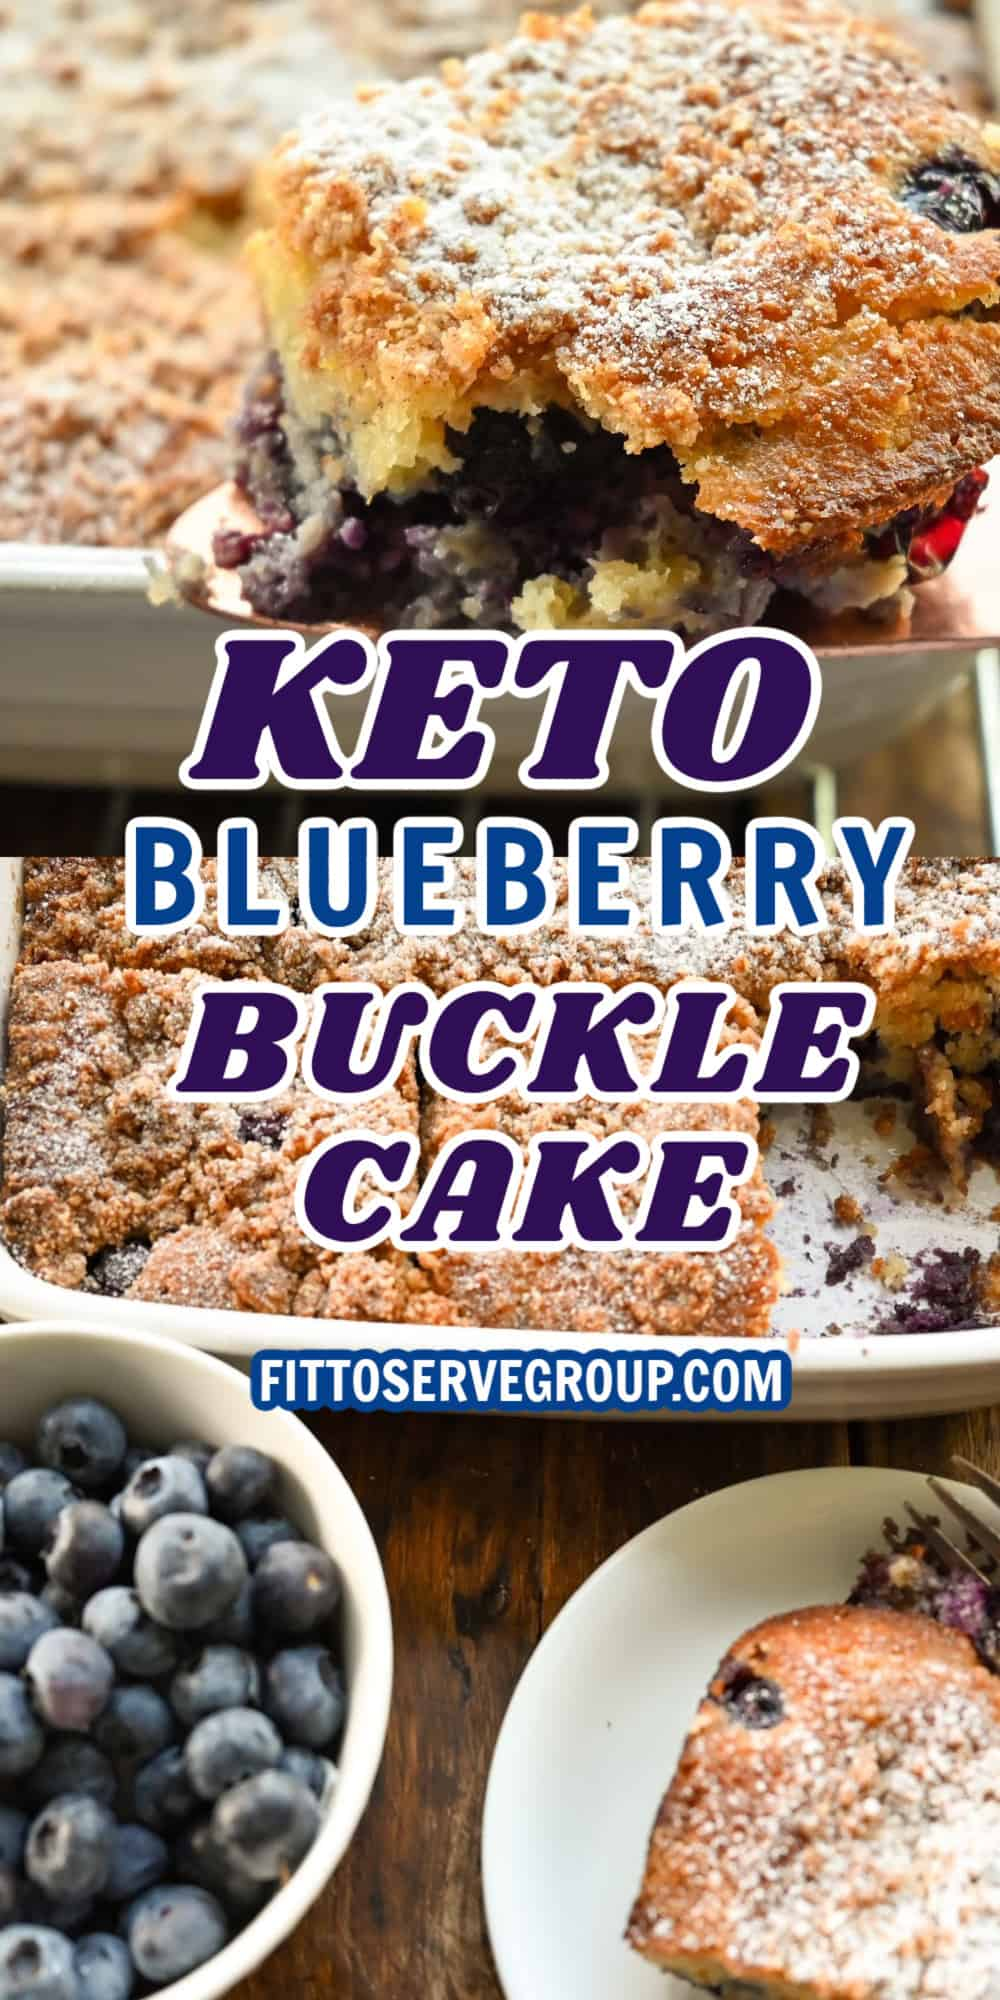 KETO BLUEBERRY BUCKLE CAKE made in a square white baking pan